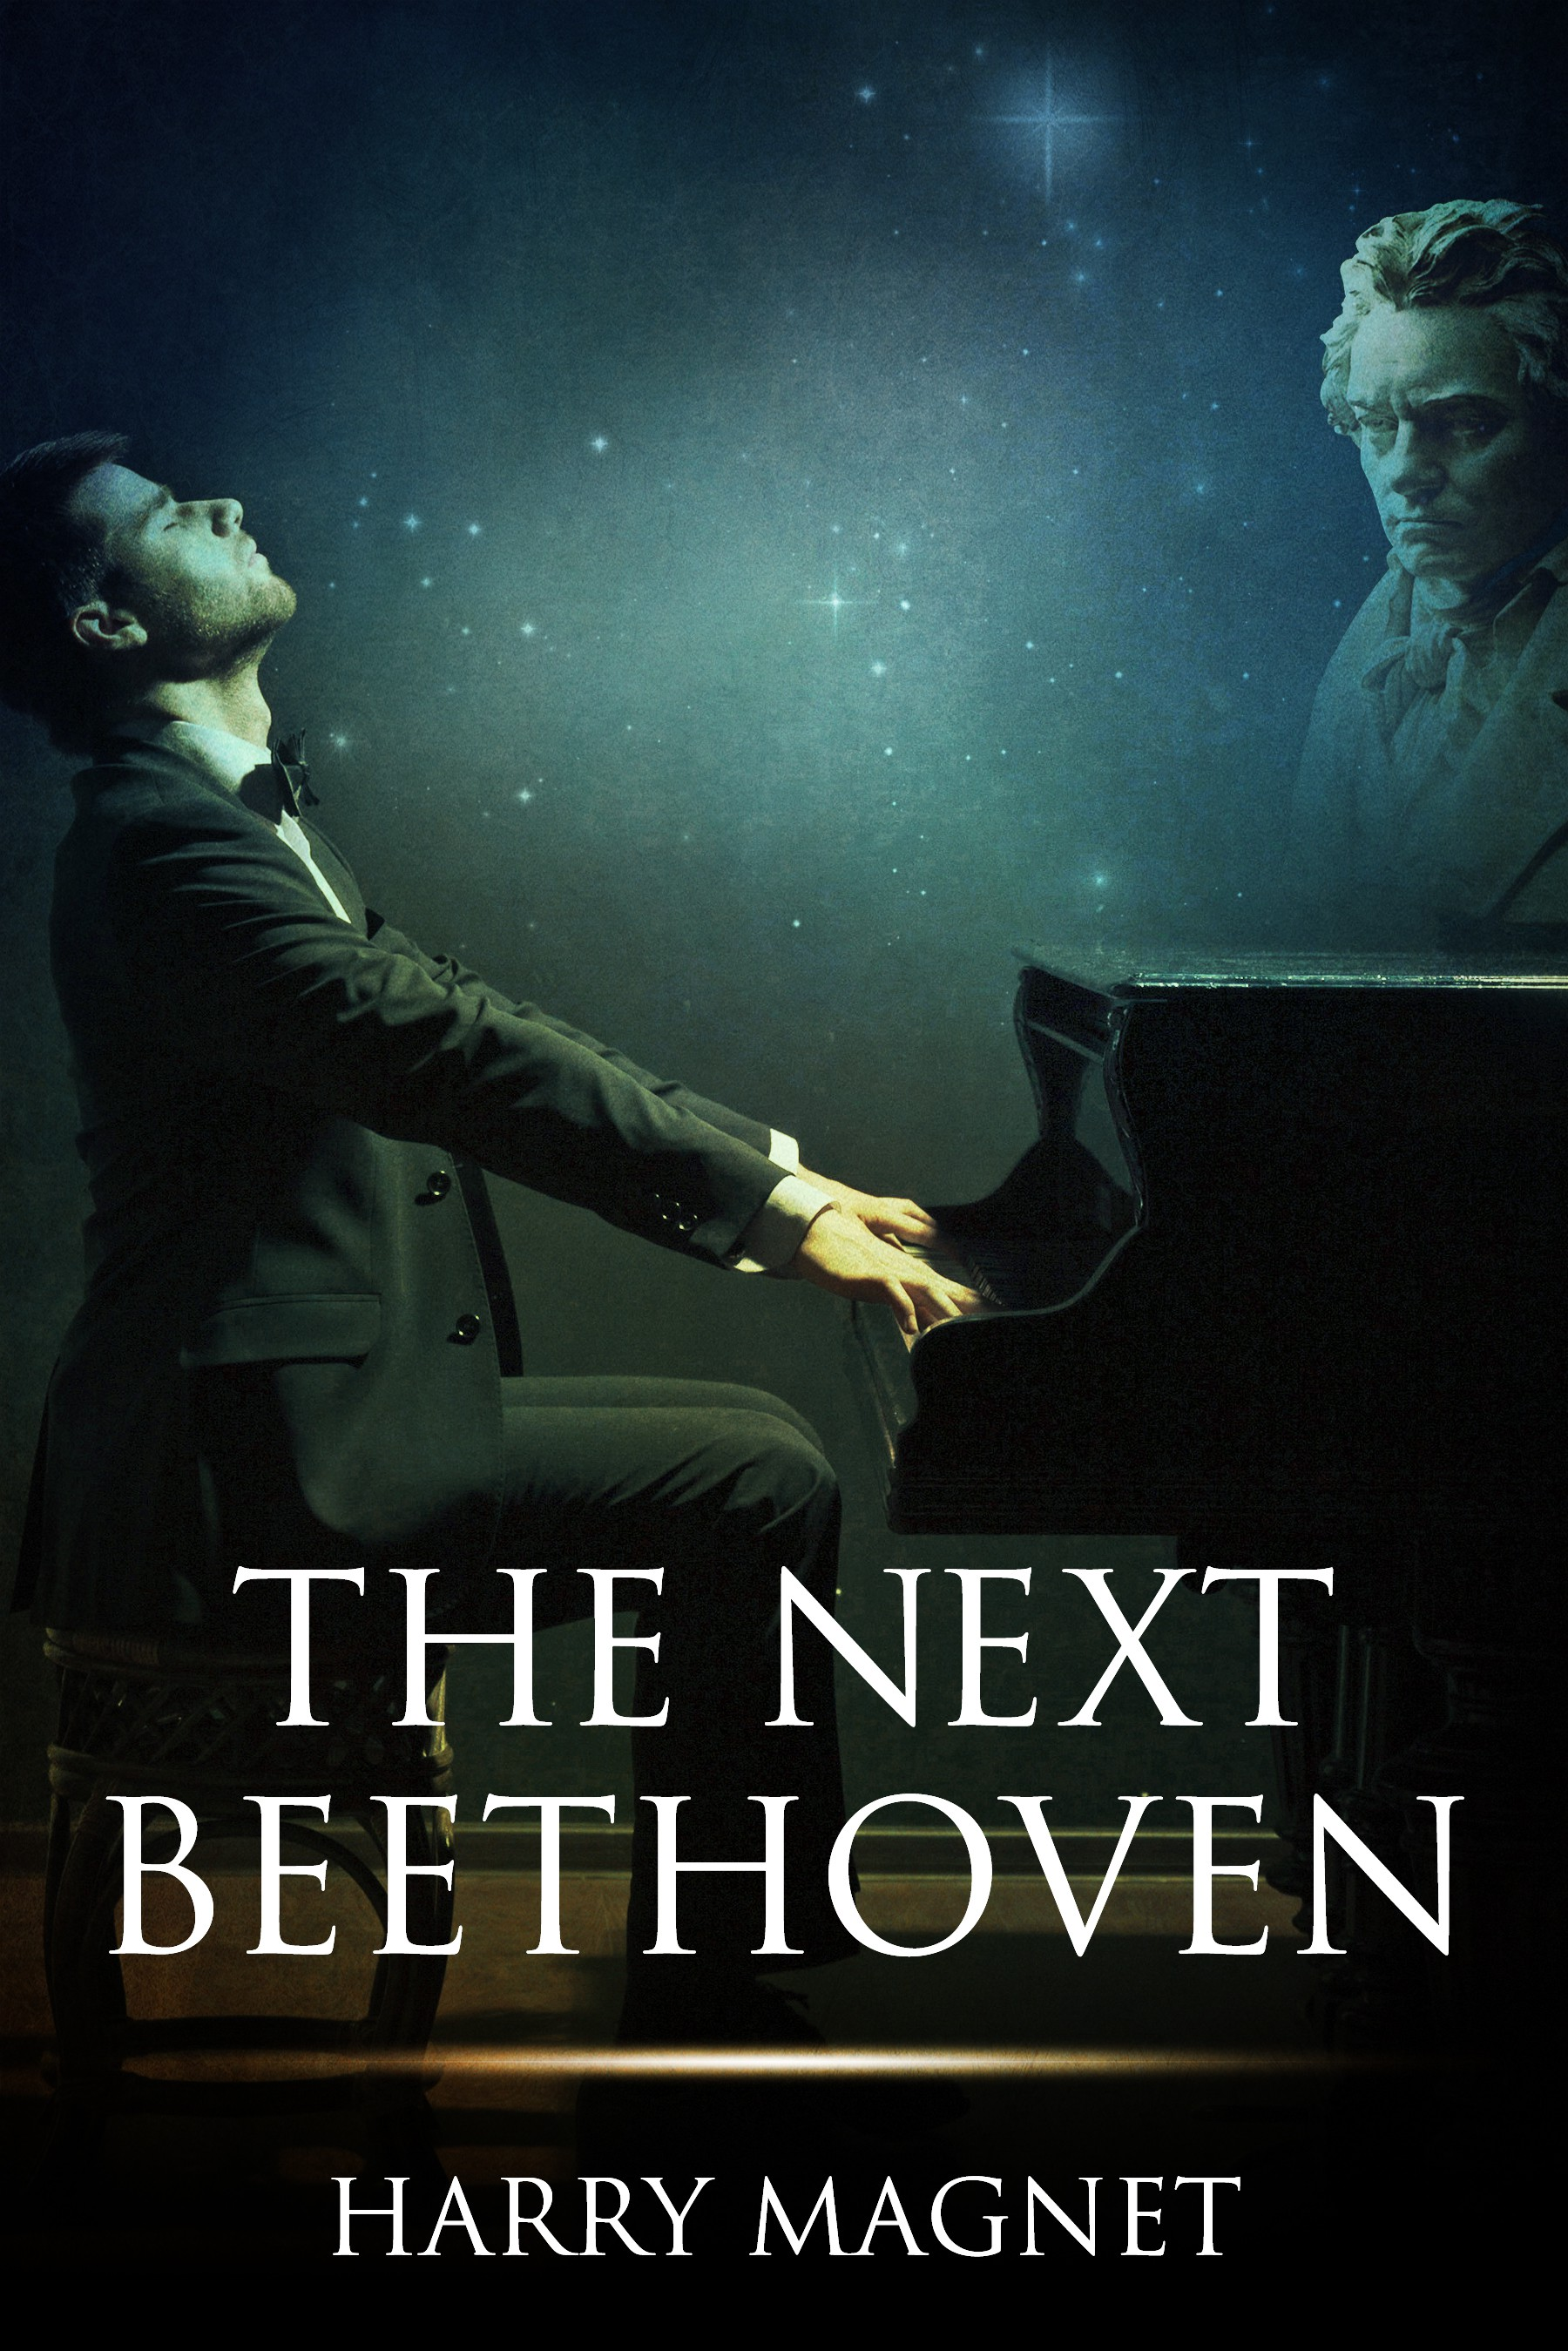 Ebook cover for novel The Next Beethoven